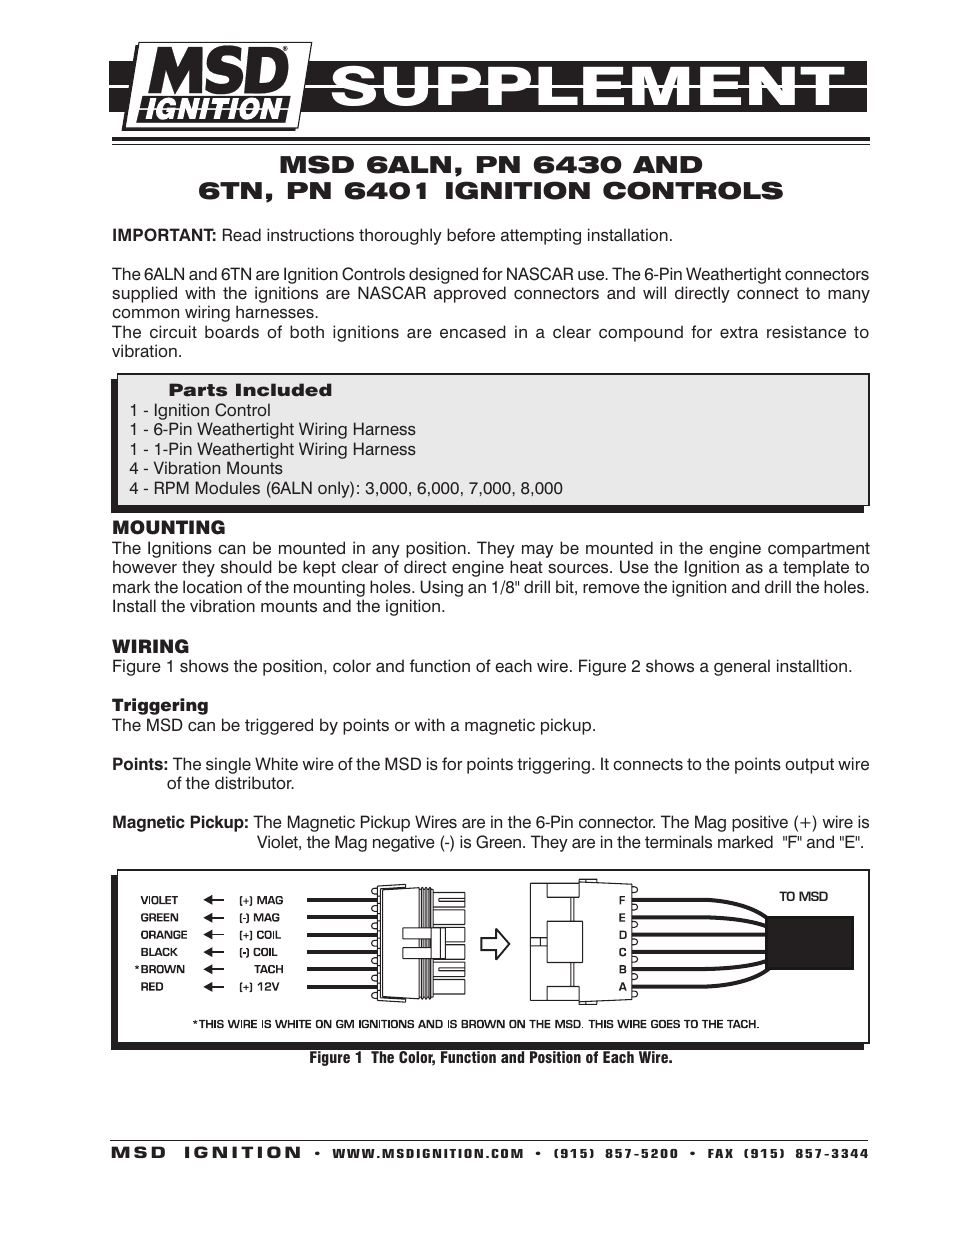 6430 Msd Wiring Diagram - wiring diagrams